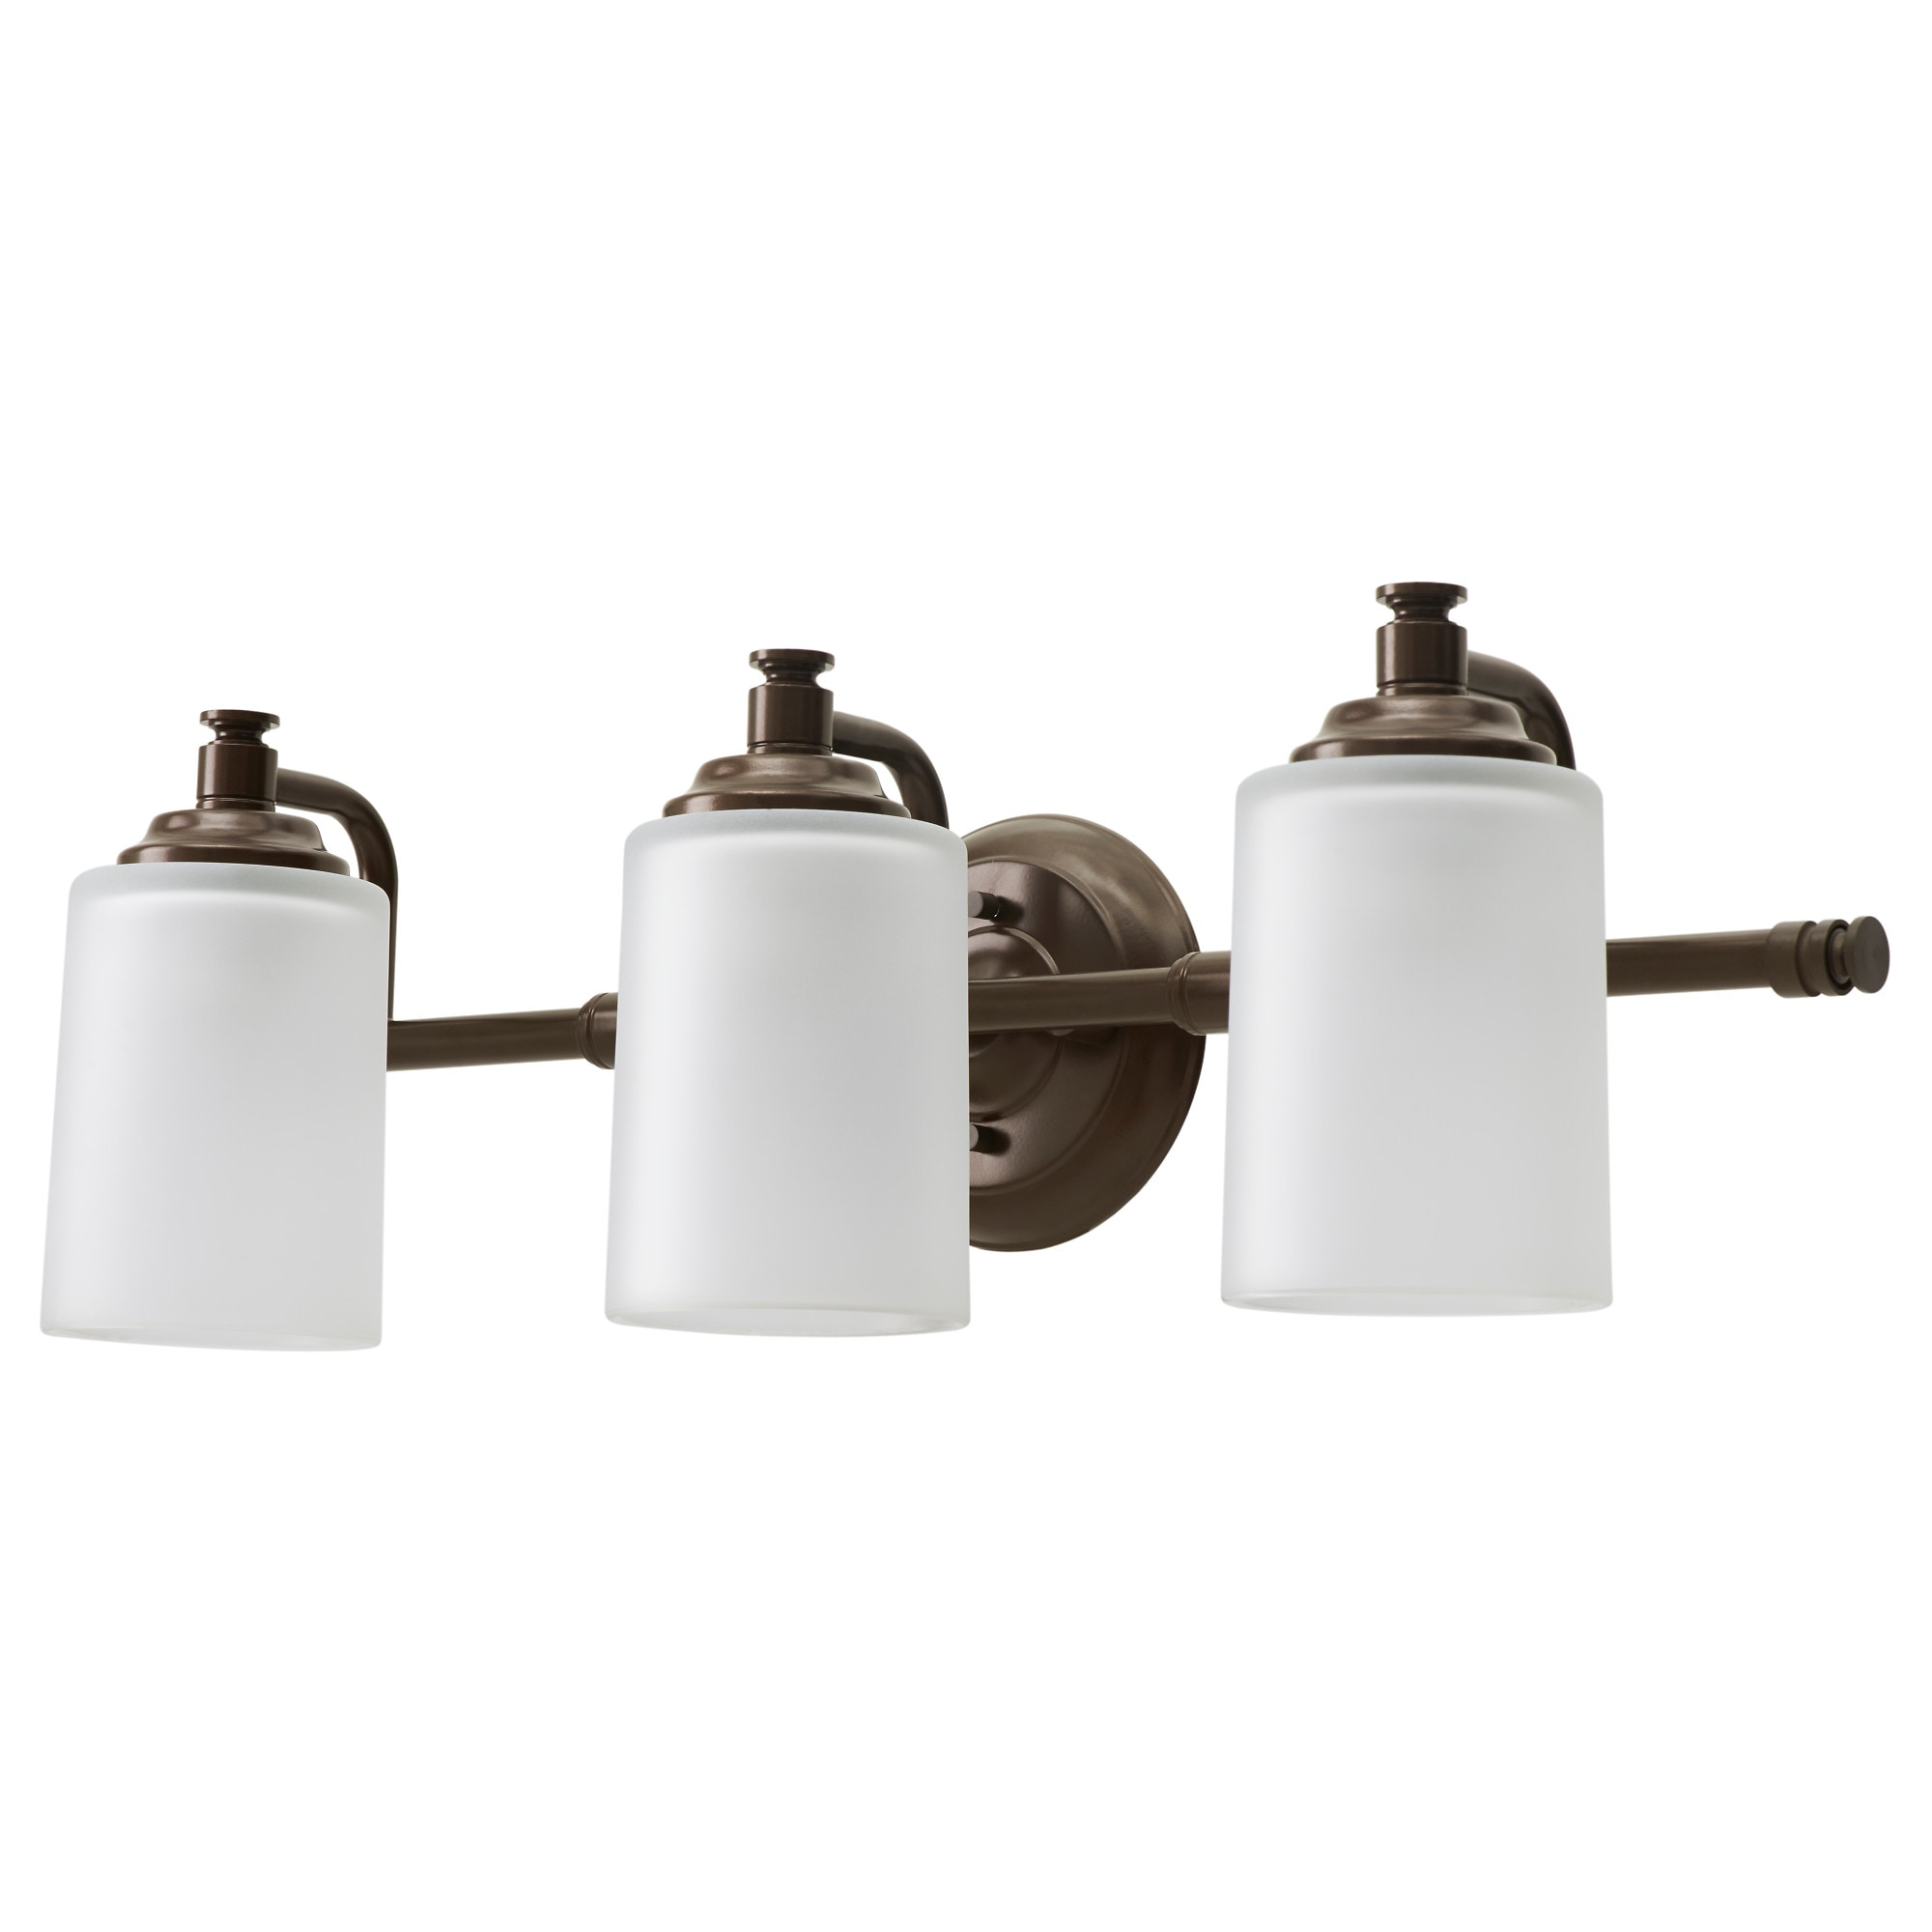 Ordinaire VIPPARP Wall Lamp, 3 Spots